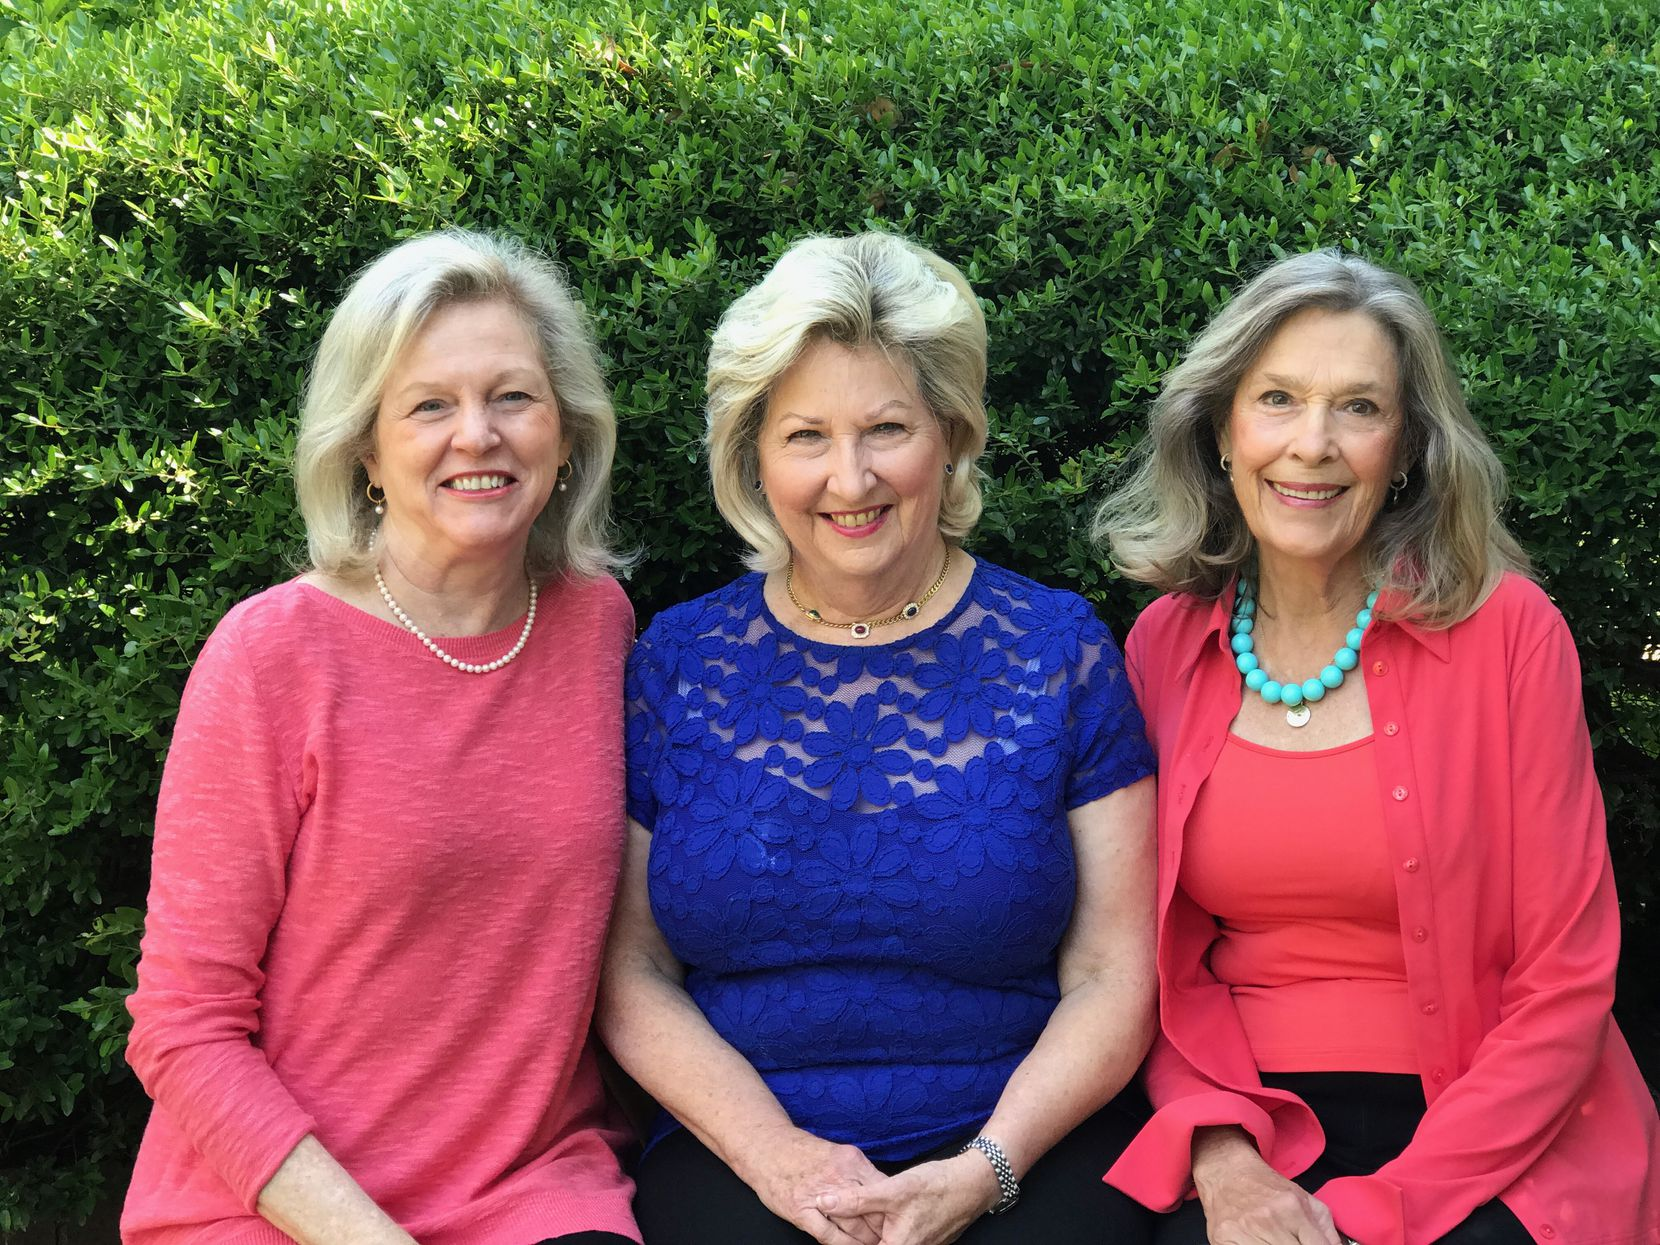 Texas Discovery Gardens will present the Flora Award to three former board members of the group: (from left) Marilyn Waisanen, Bettye Slaven and Janet Smith.